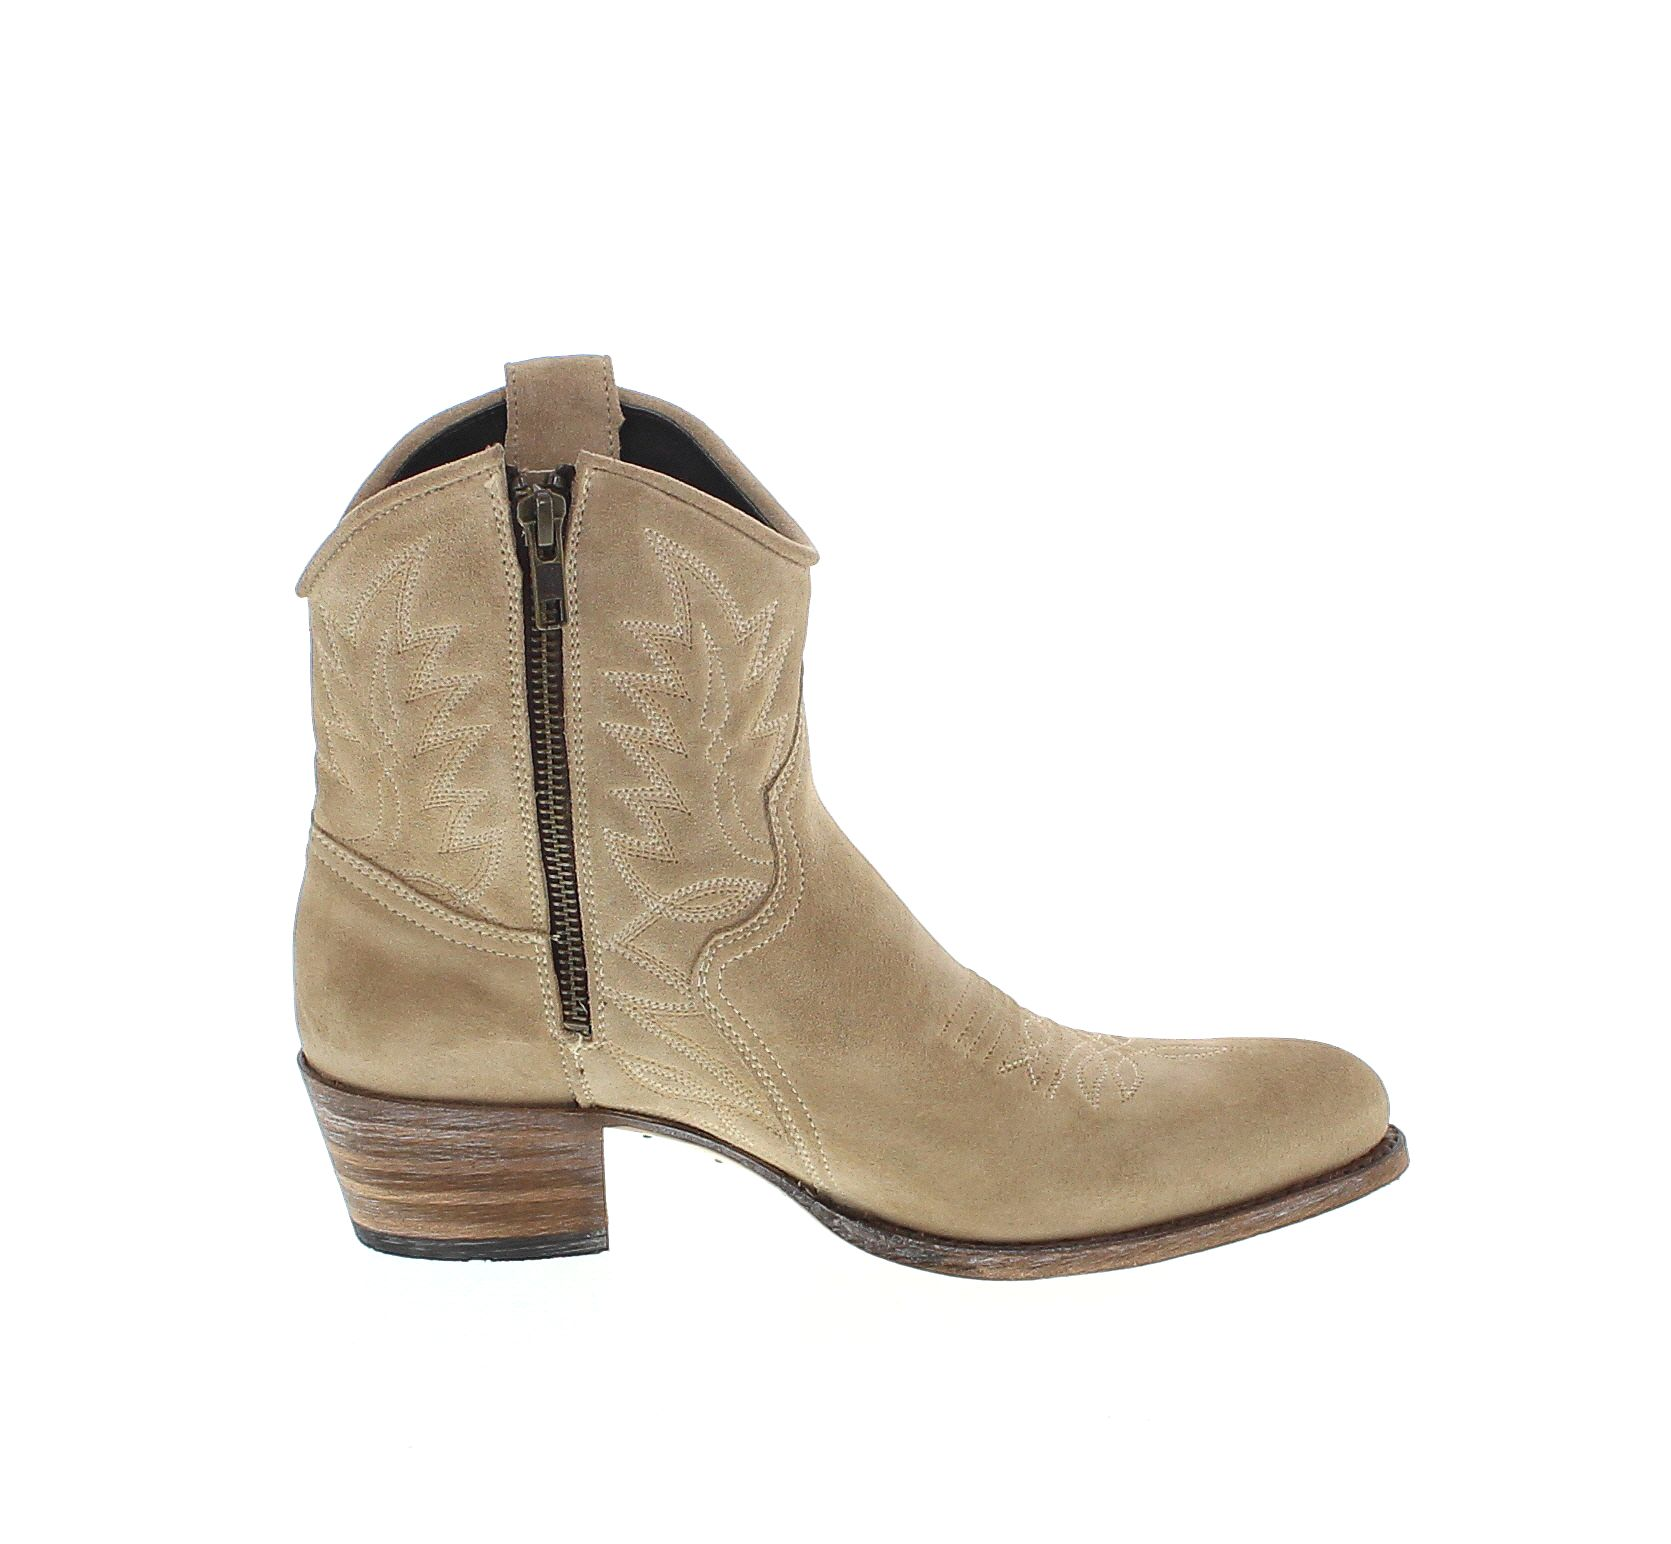 sendra boots 10163 firence western ankle boot beige